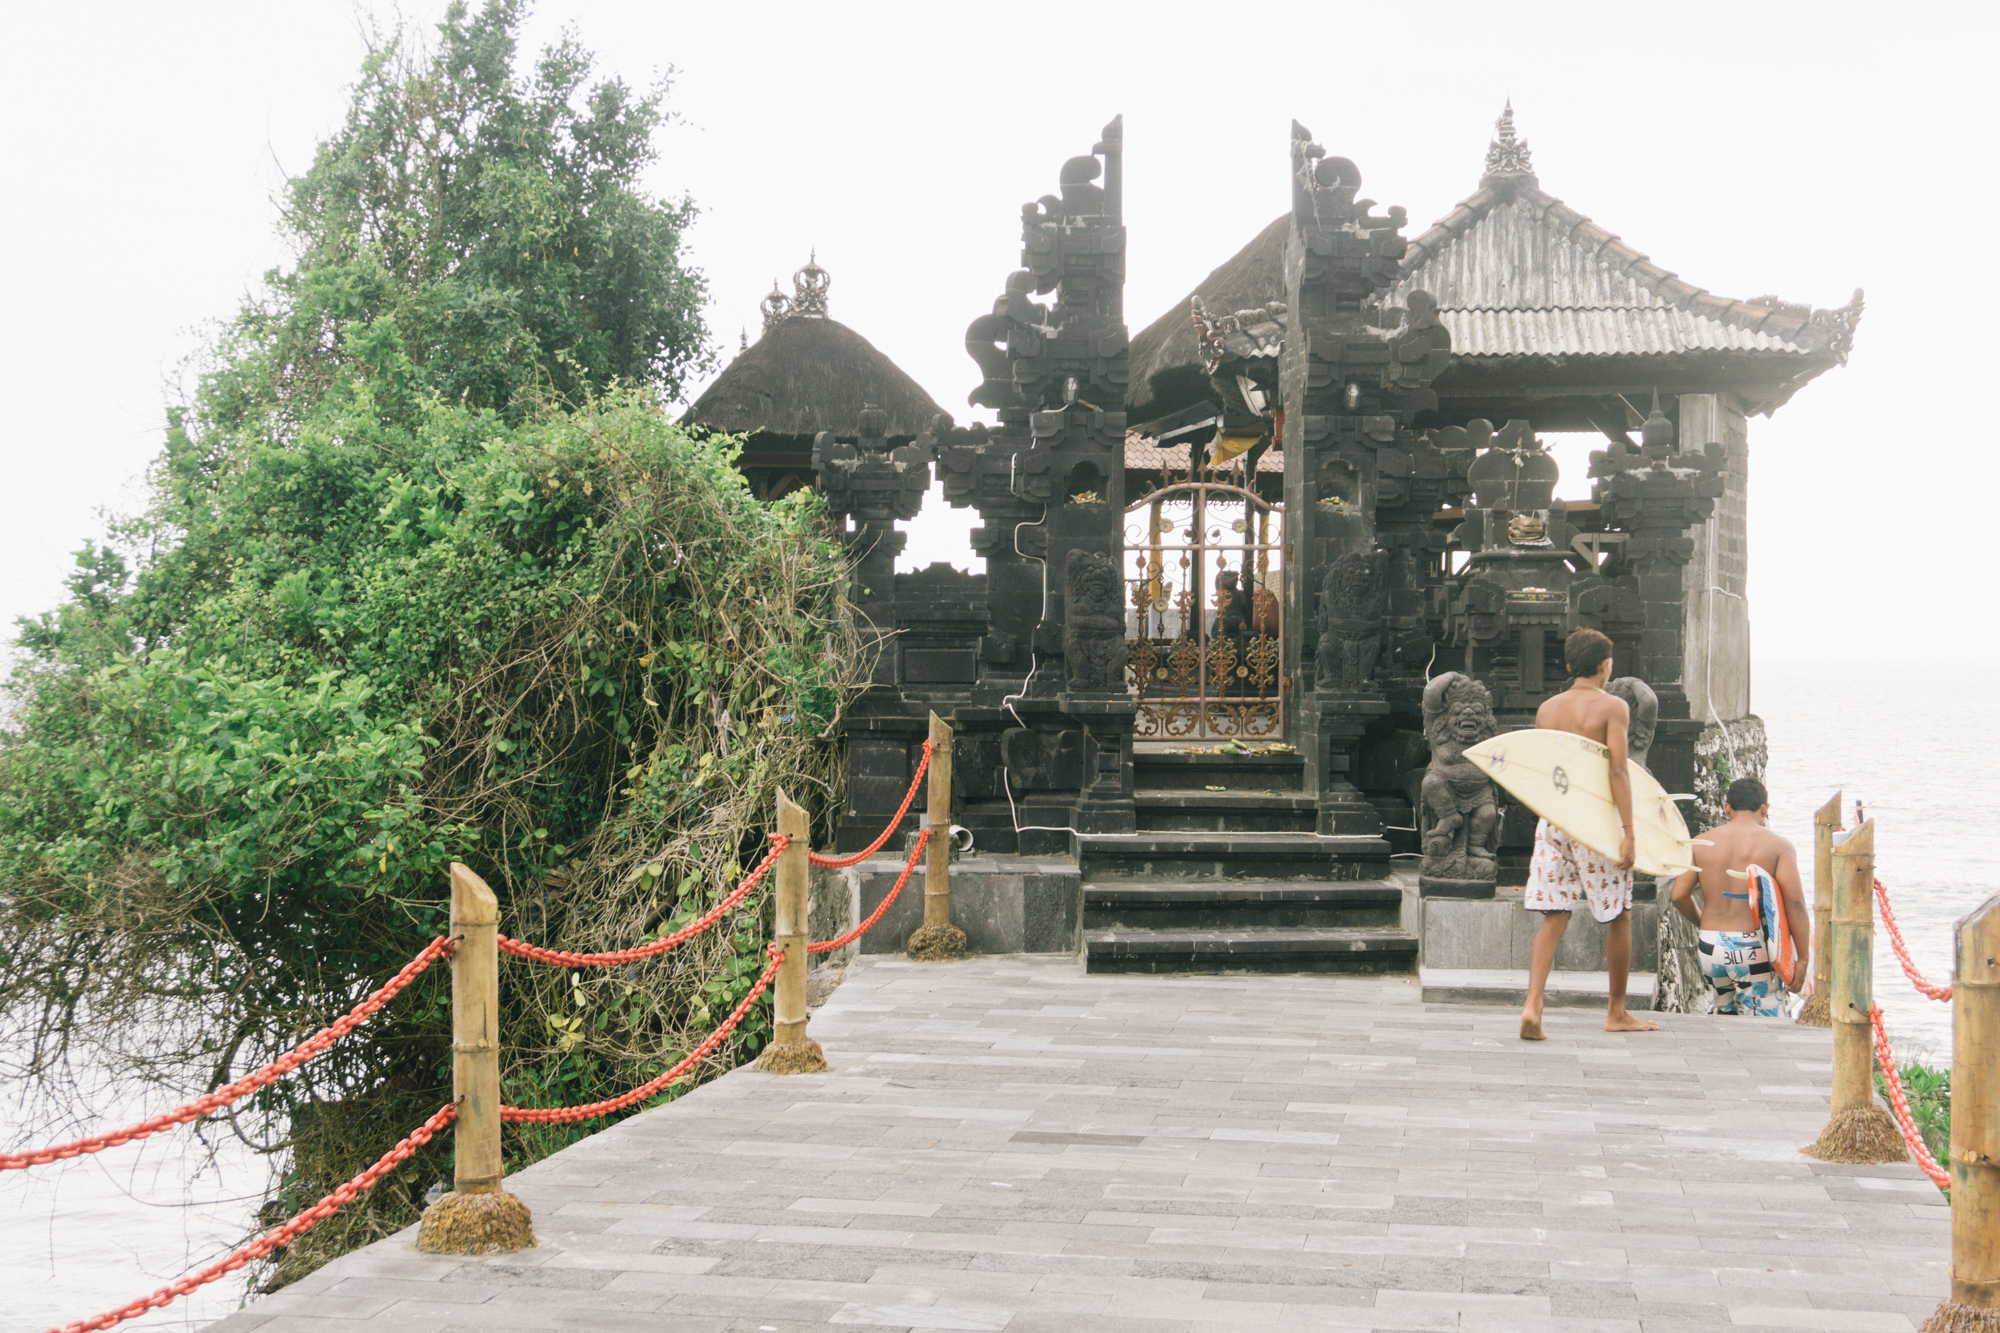 Local surfers sneak around a portion of the Tanah Lot Temple to get access to a nearby bay to surf the bay of one of the most iconic temples in Bali.